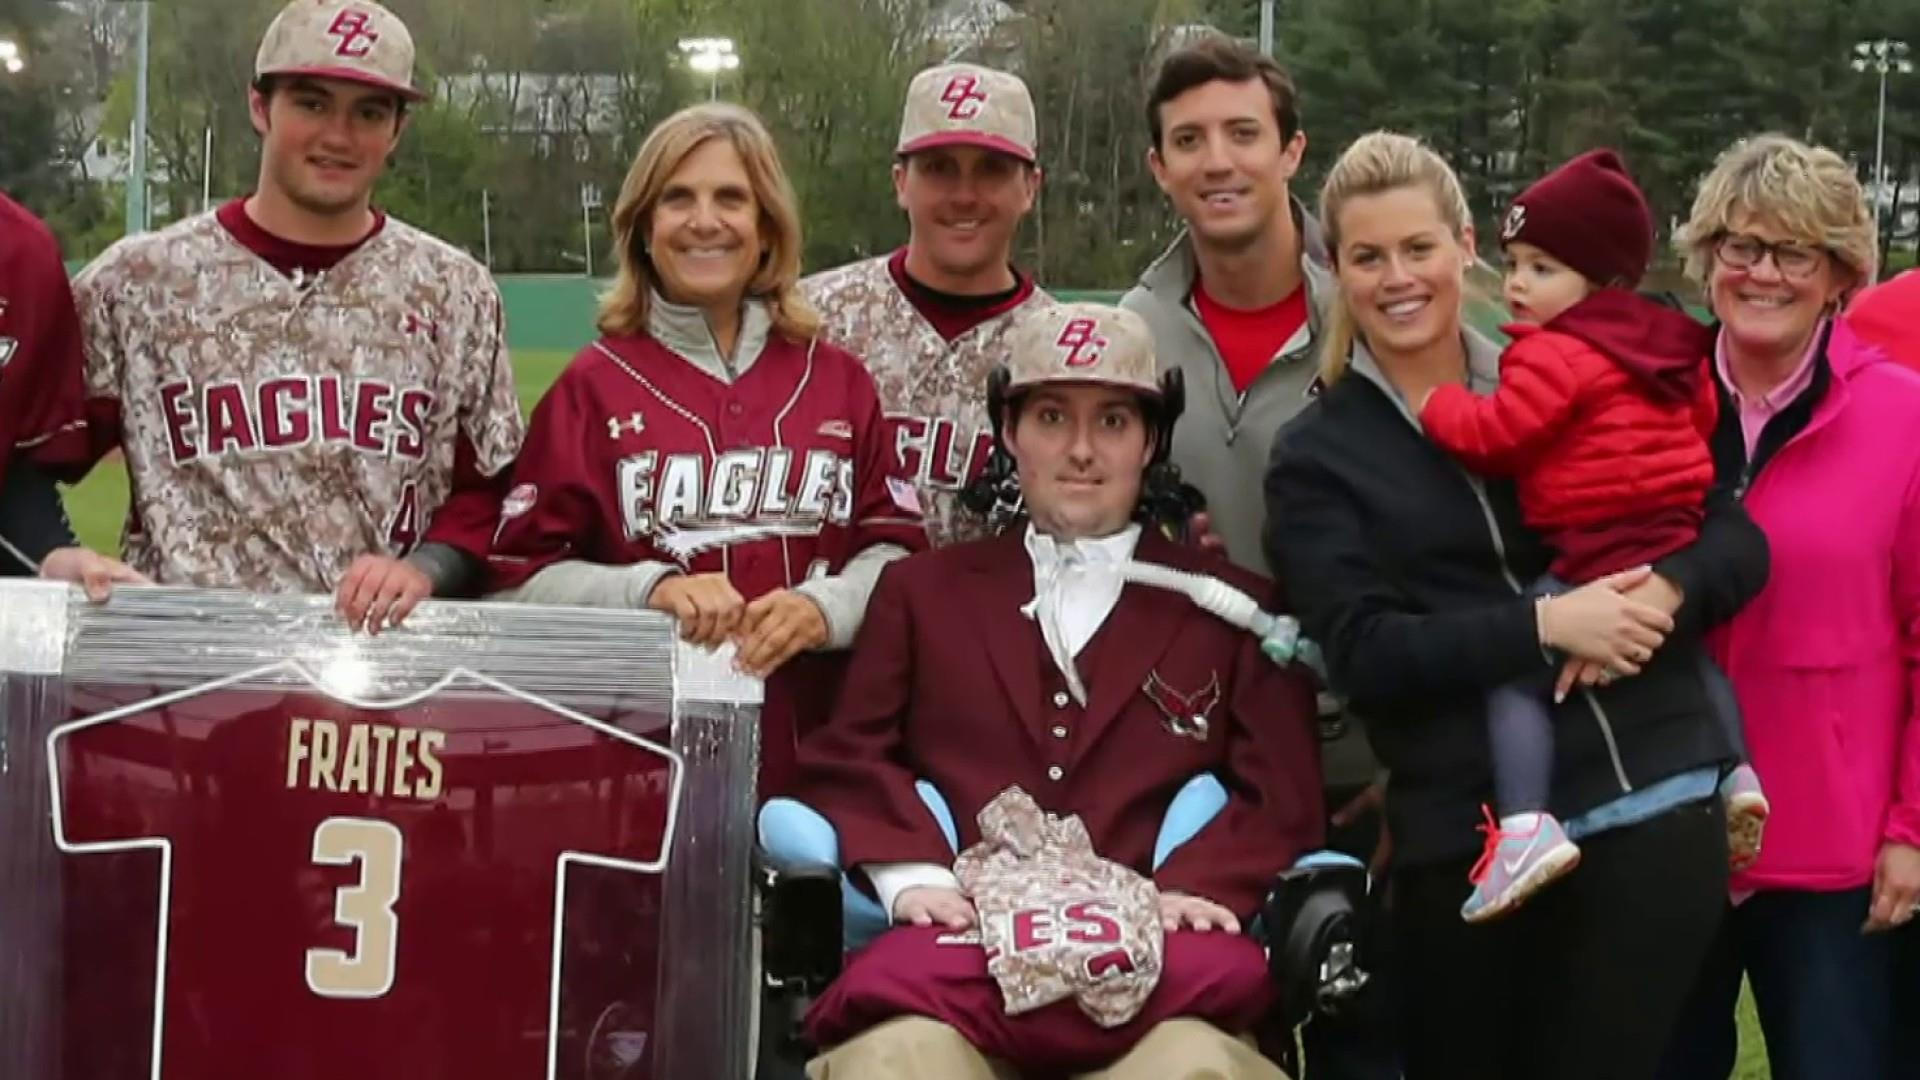 Peter Frates, inspiration for the ALS Ice Bucket Challenge, dies at 34